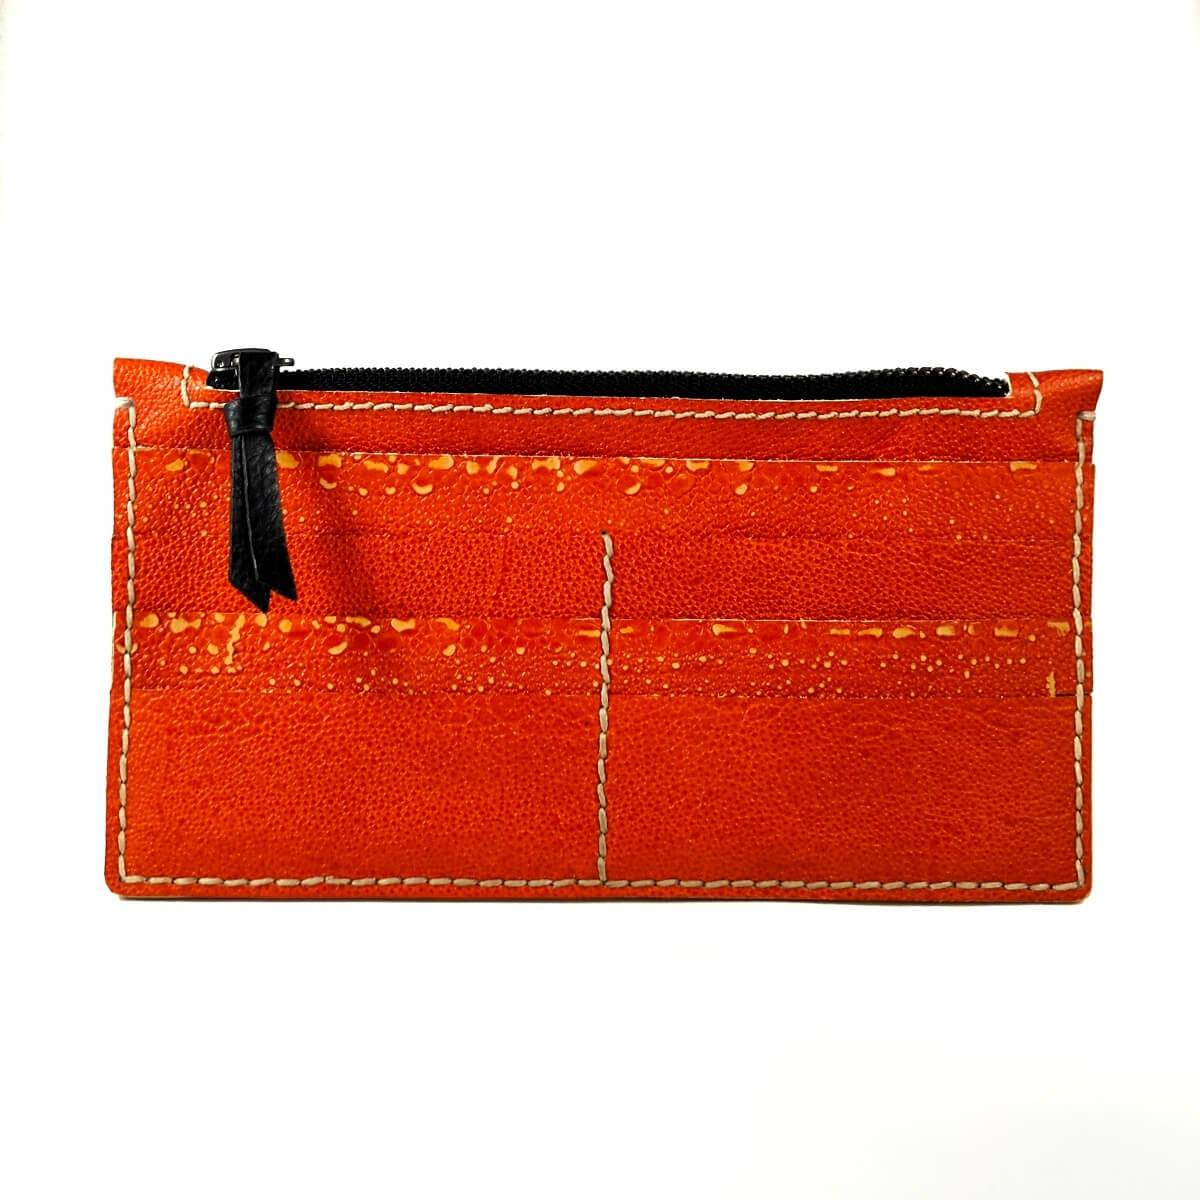 Raphael Rossetti Women's Orange Lether Wallet